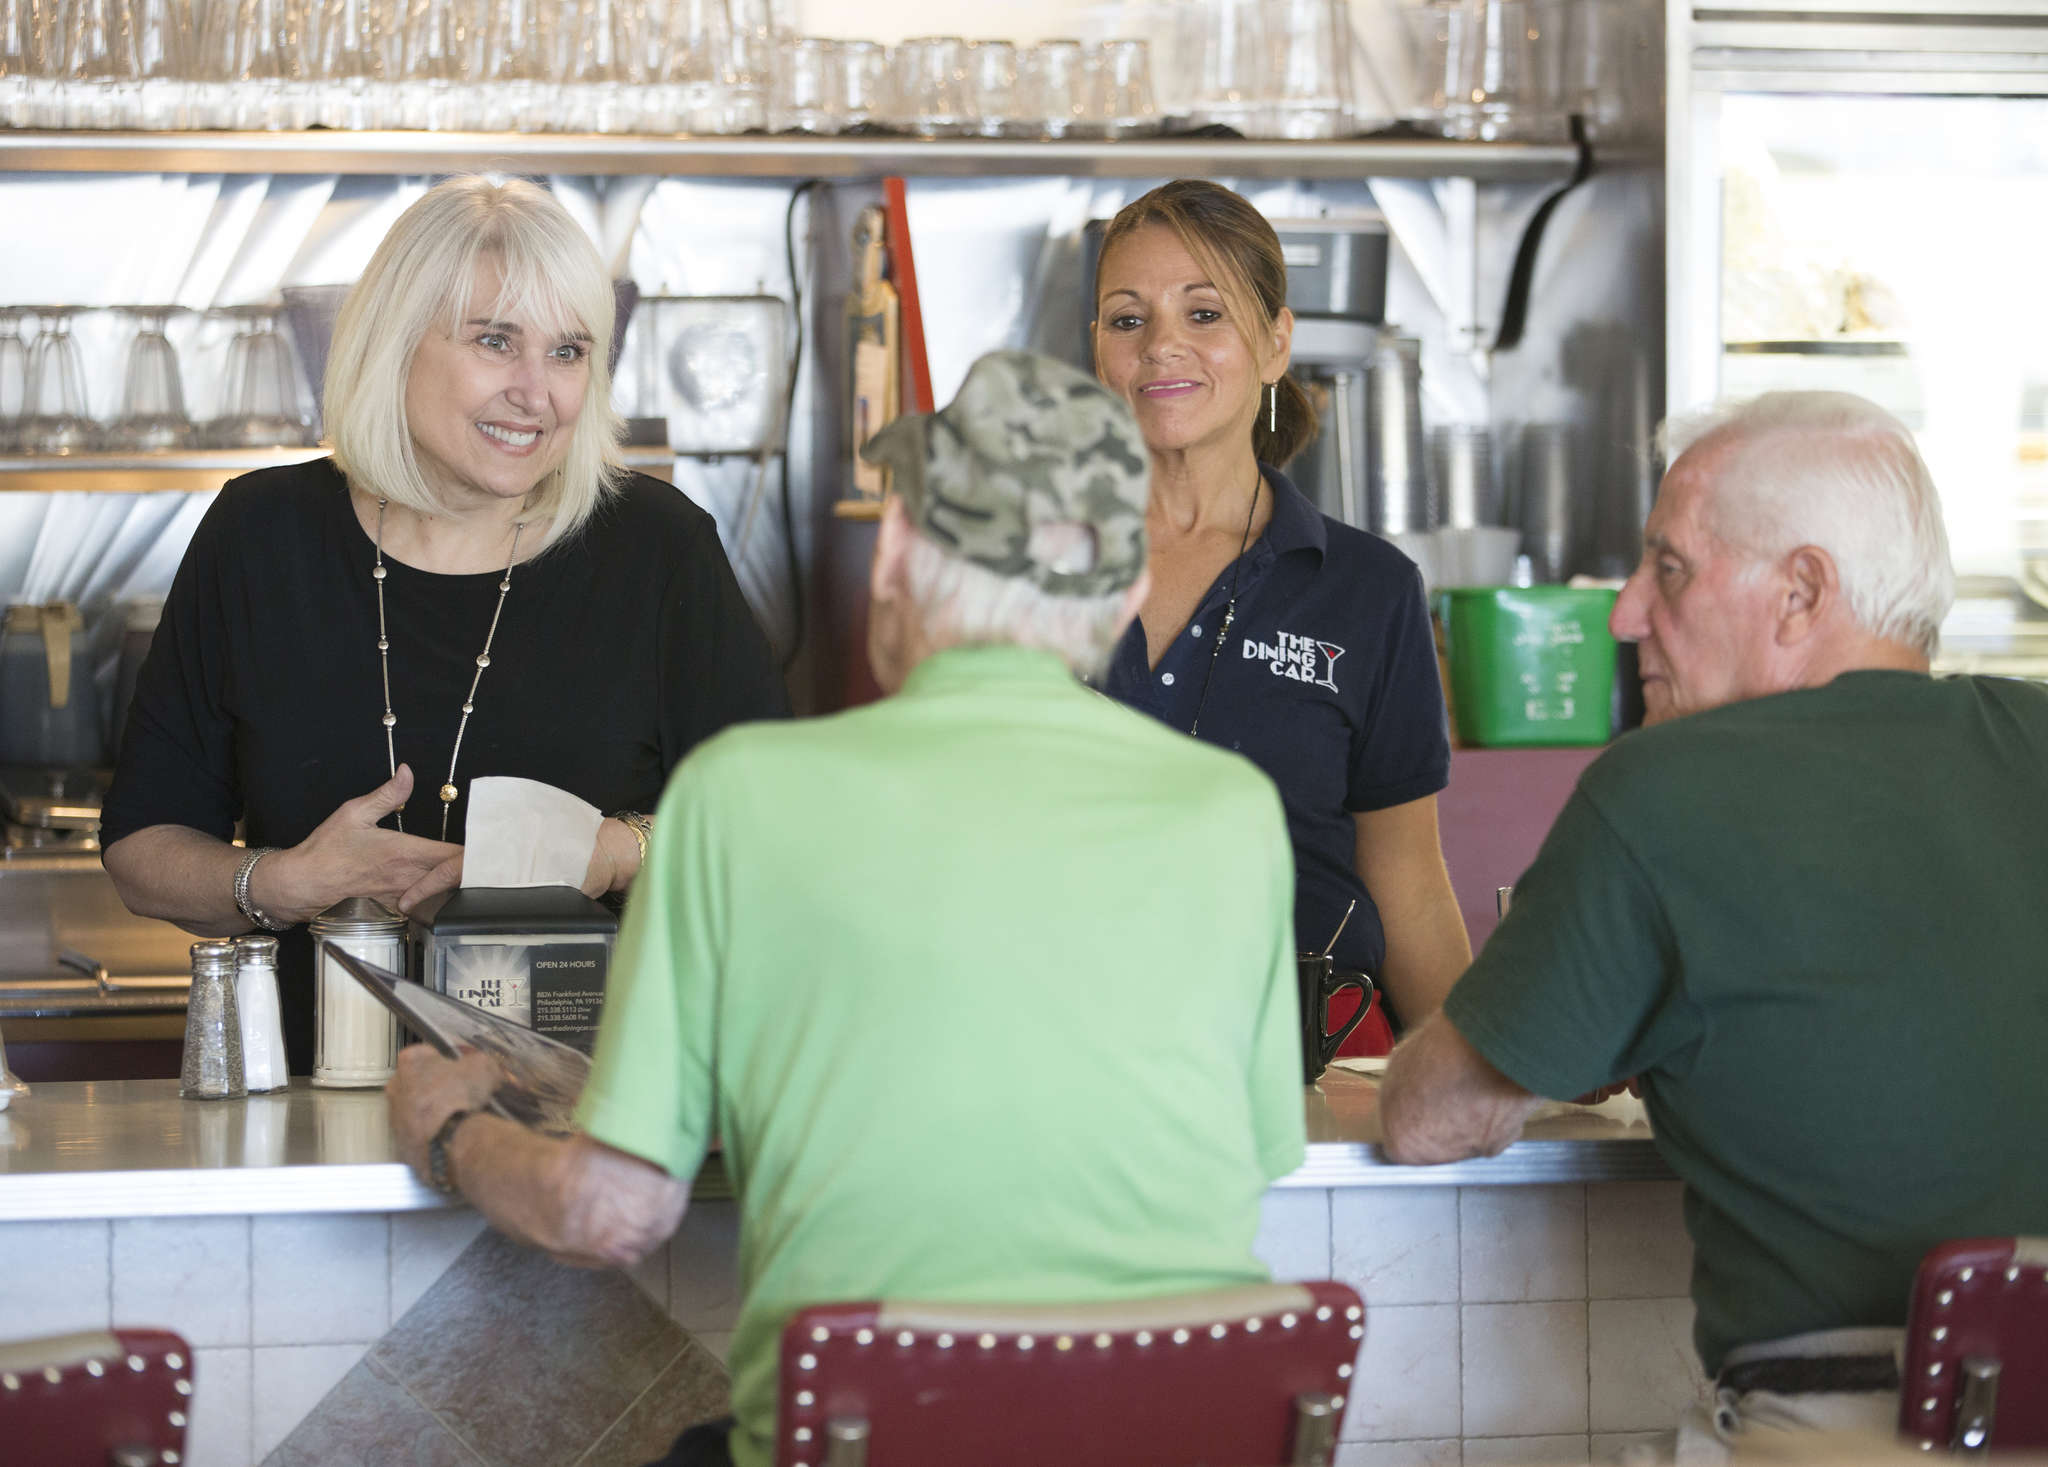 Nancy Morozin (left), owner of the Dining Car diner on Frankford Avenue, and Jackie Mercado talk with customers there.